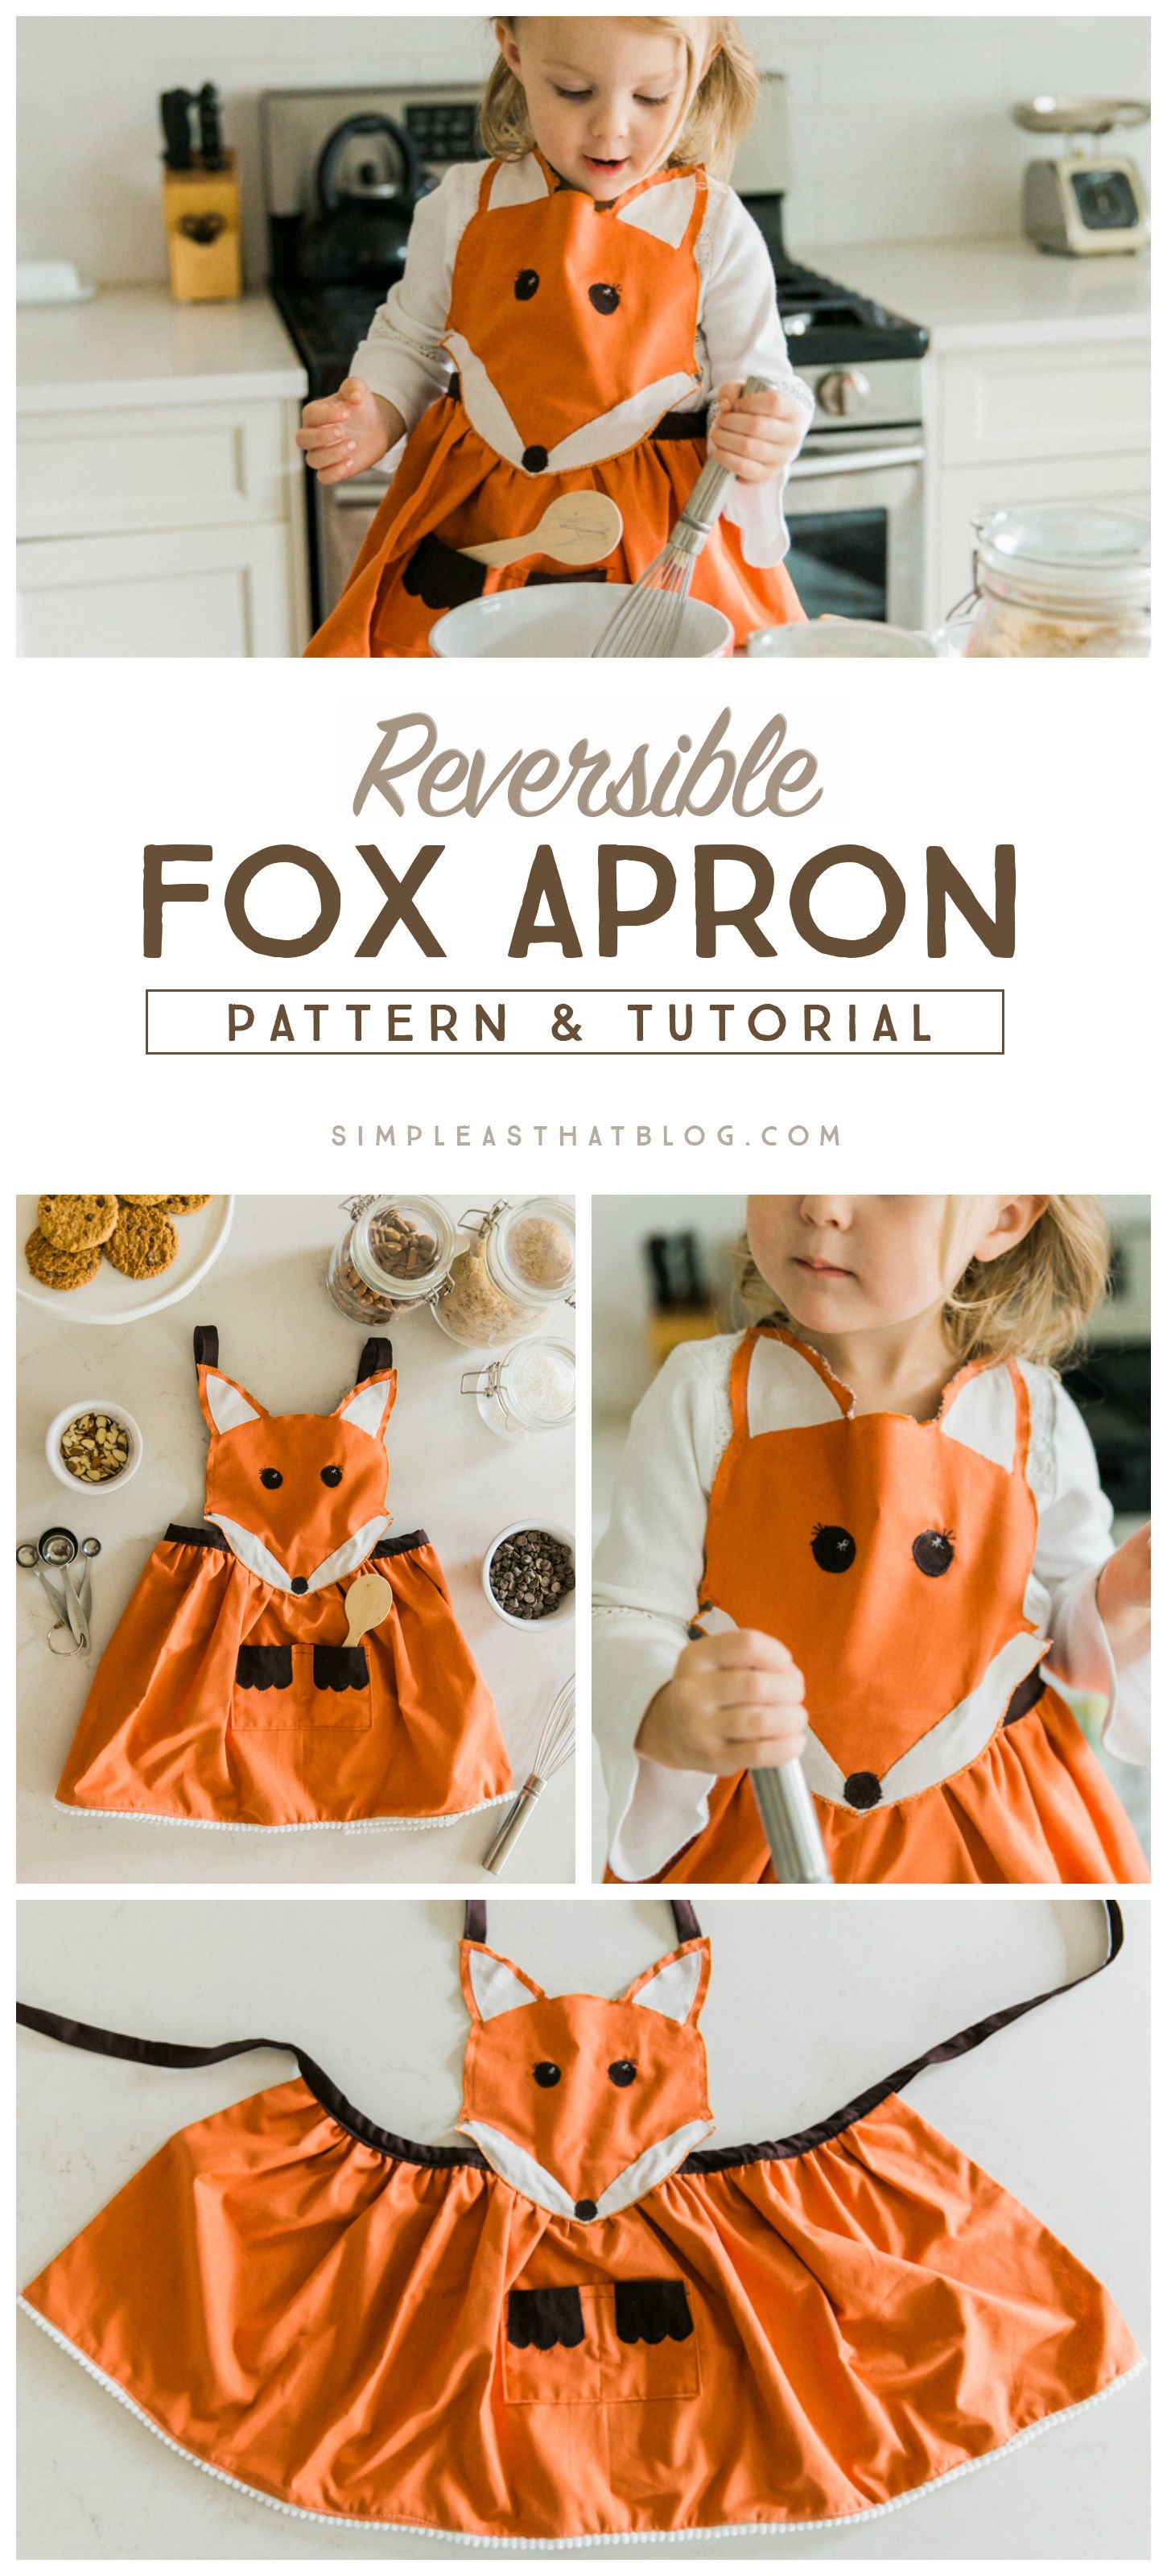 Fox Apron Tutorial and Pattern